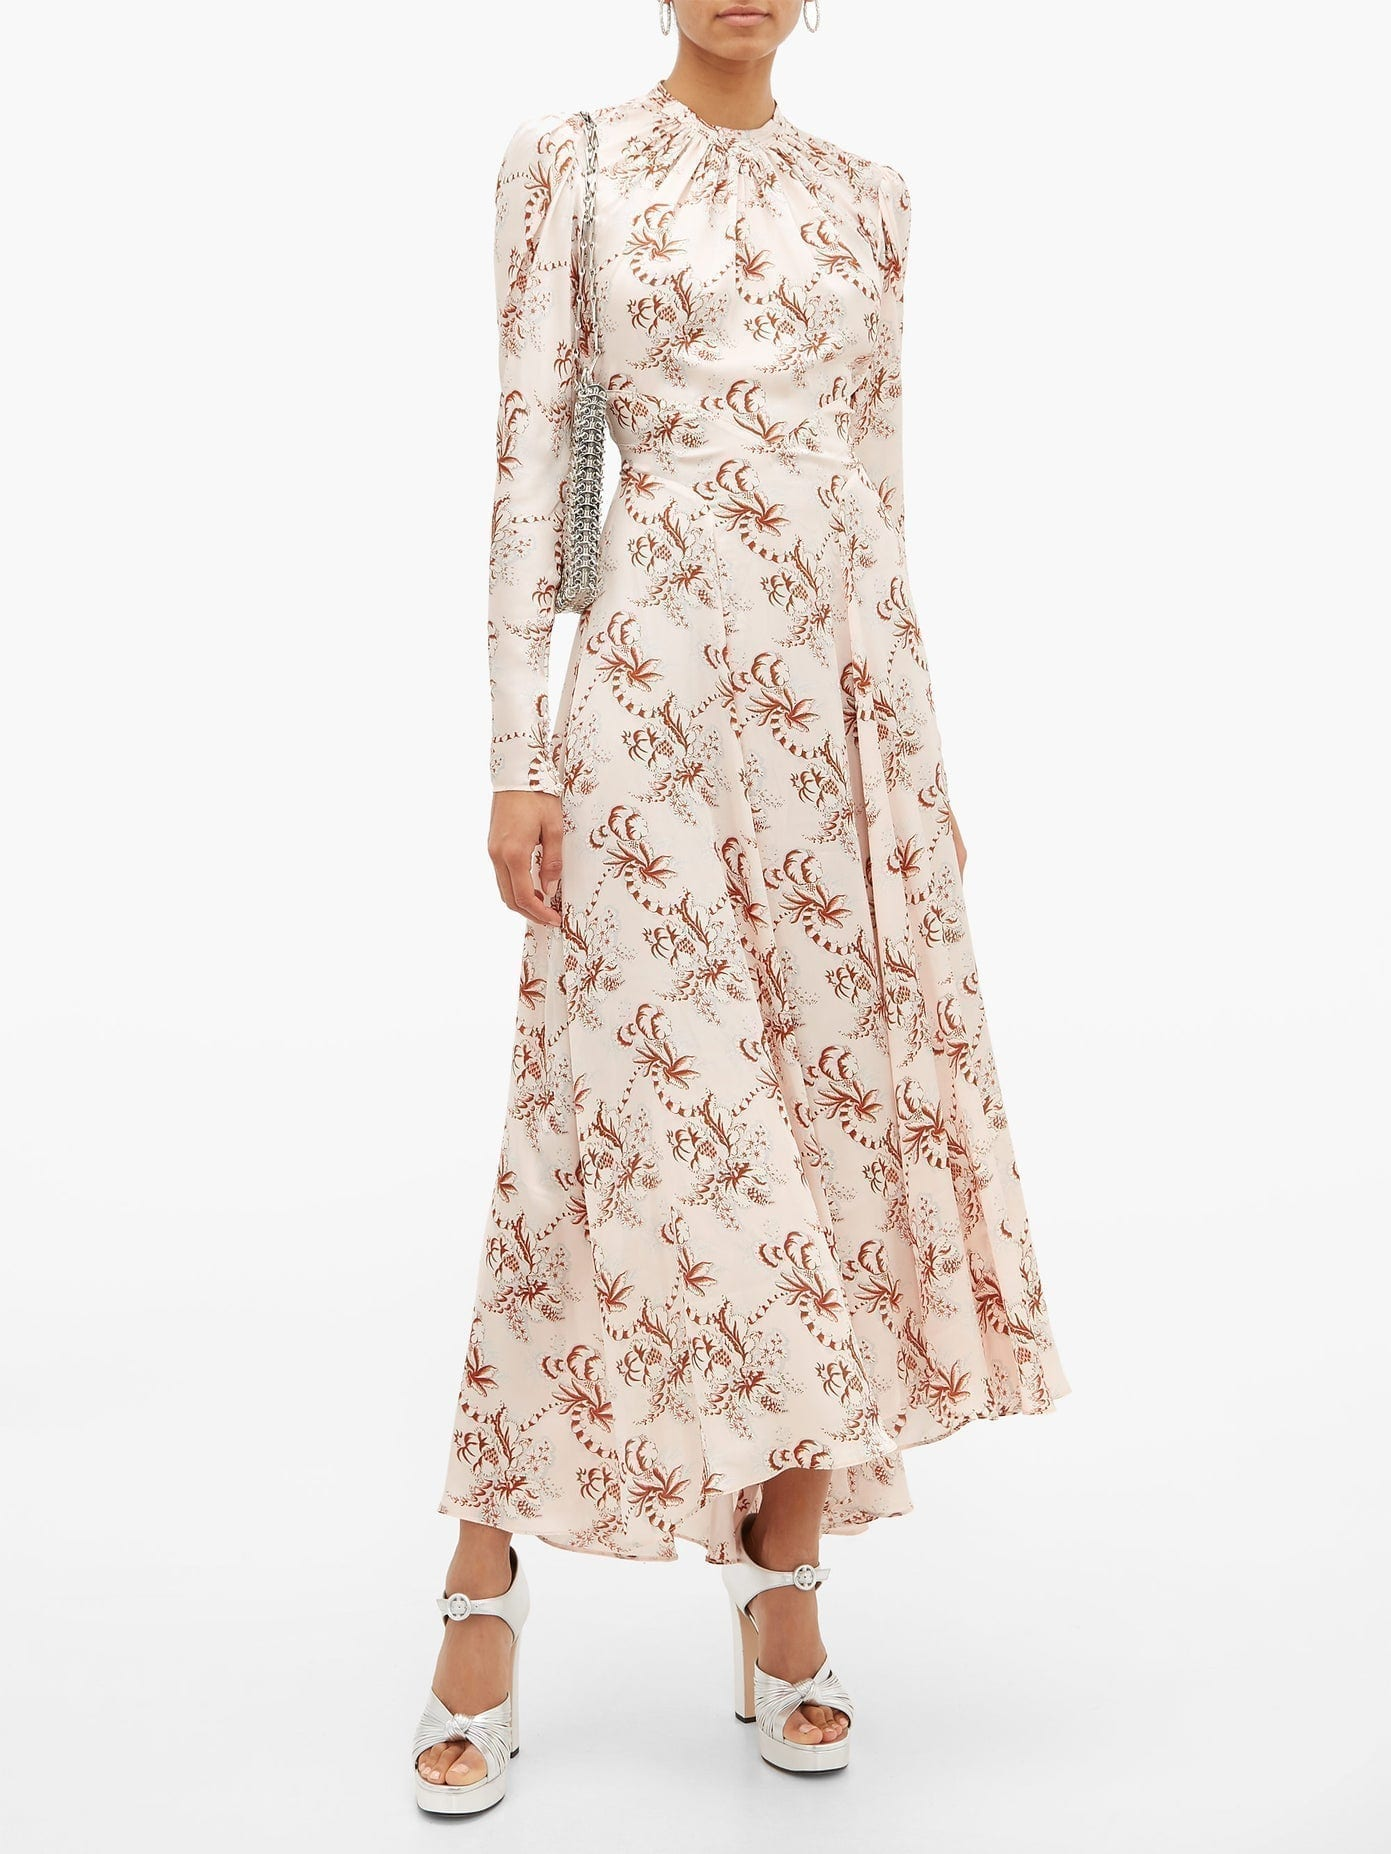 PACO RABANNE Crystal-Button Floral-Print Satin Maxi Dress